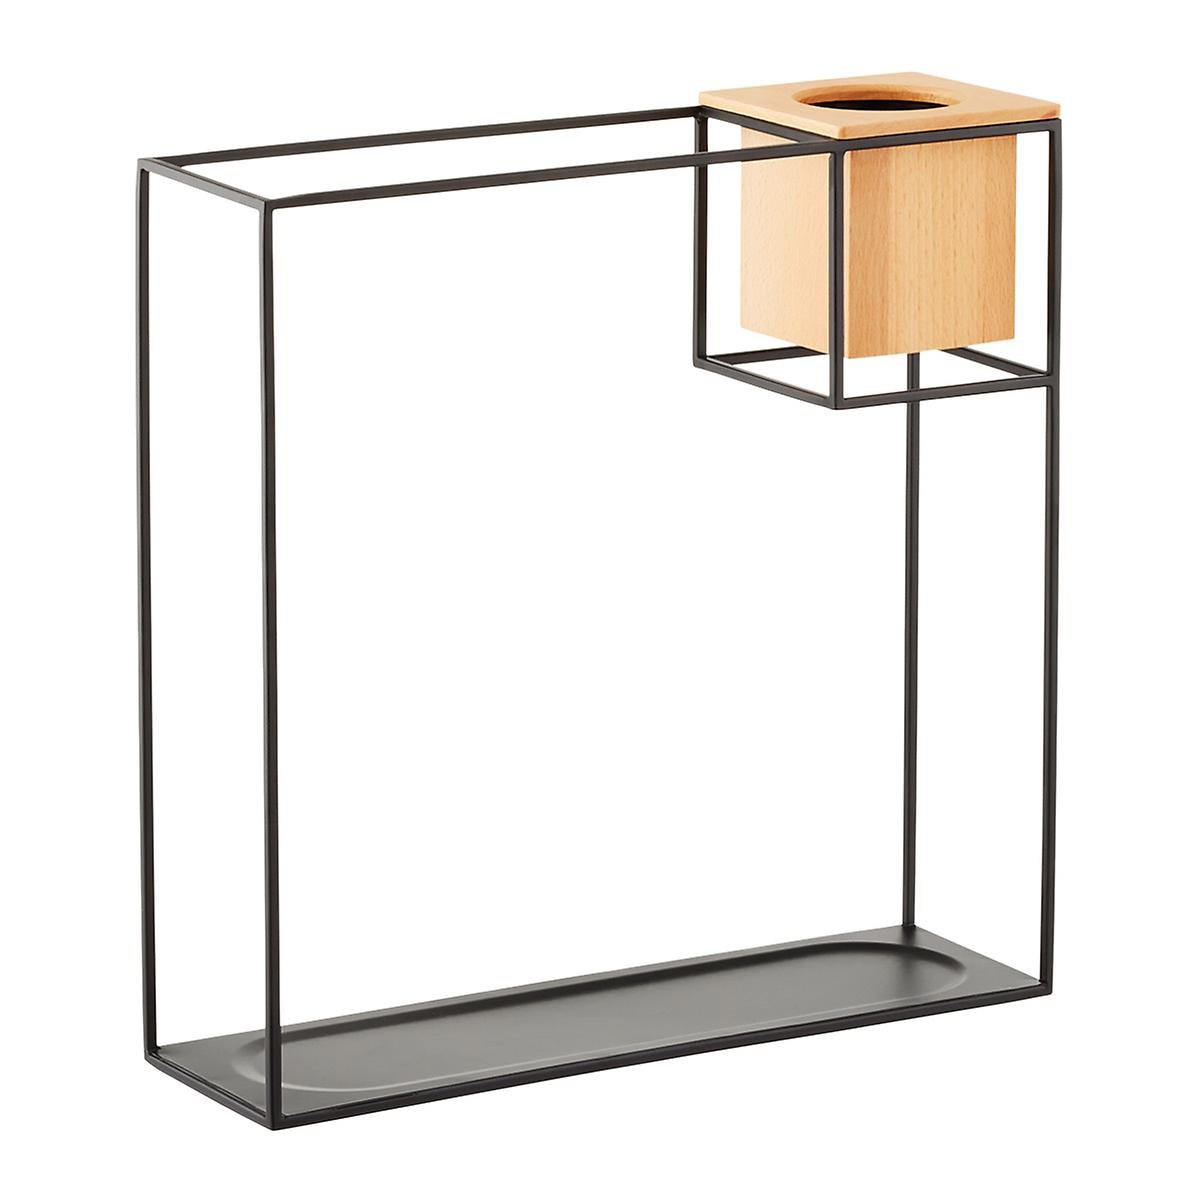 Umbra Large Cubist Wall Shelf The Container Store